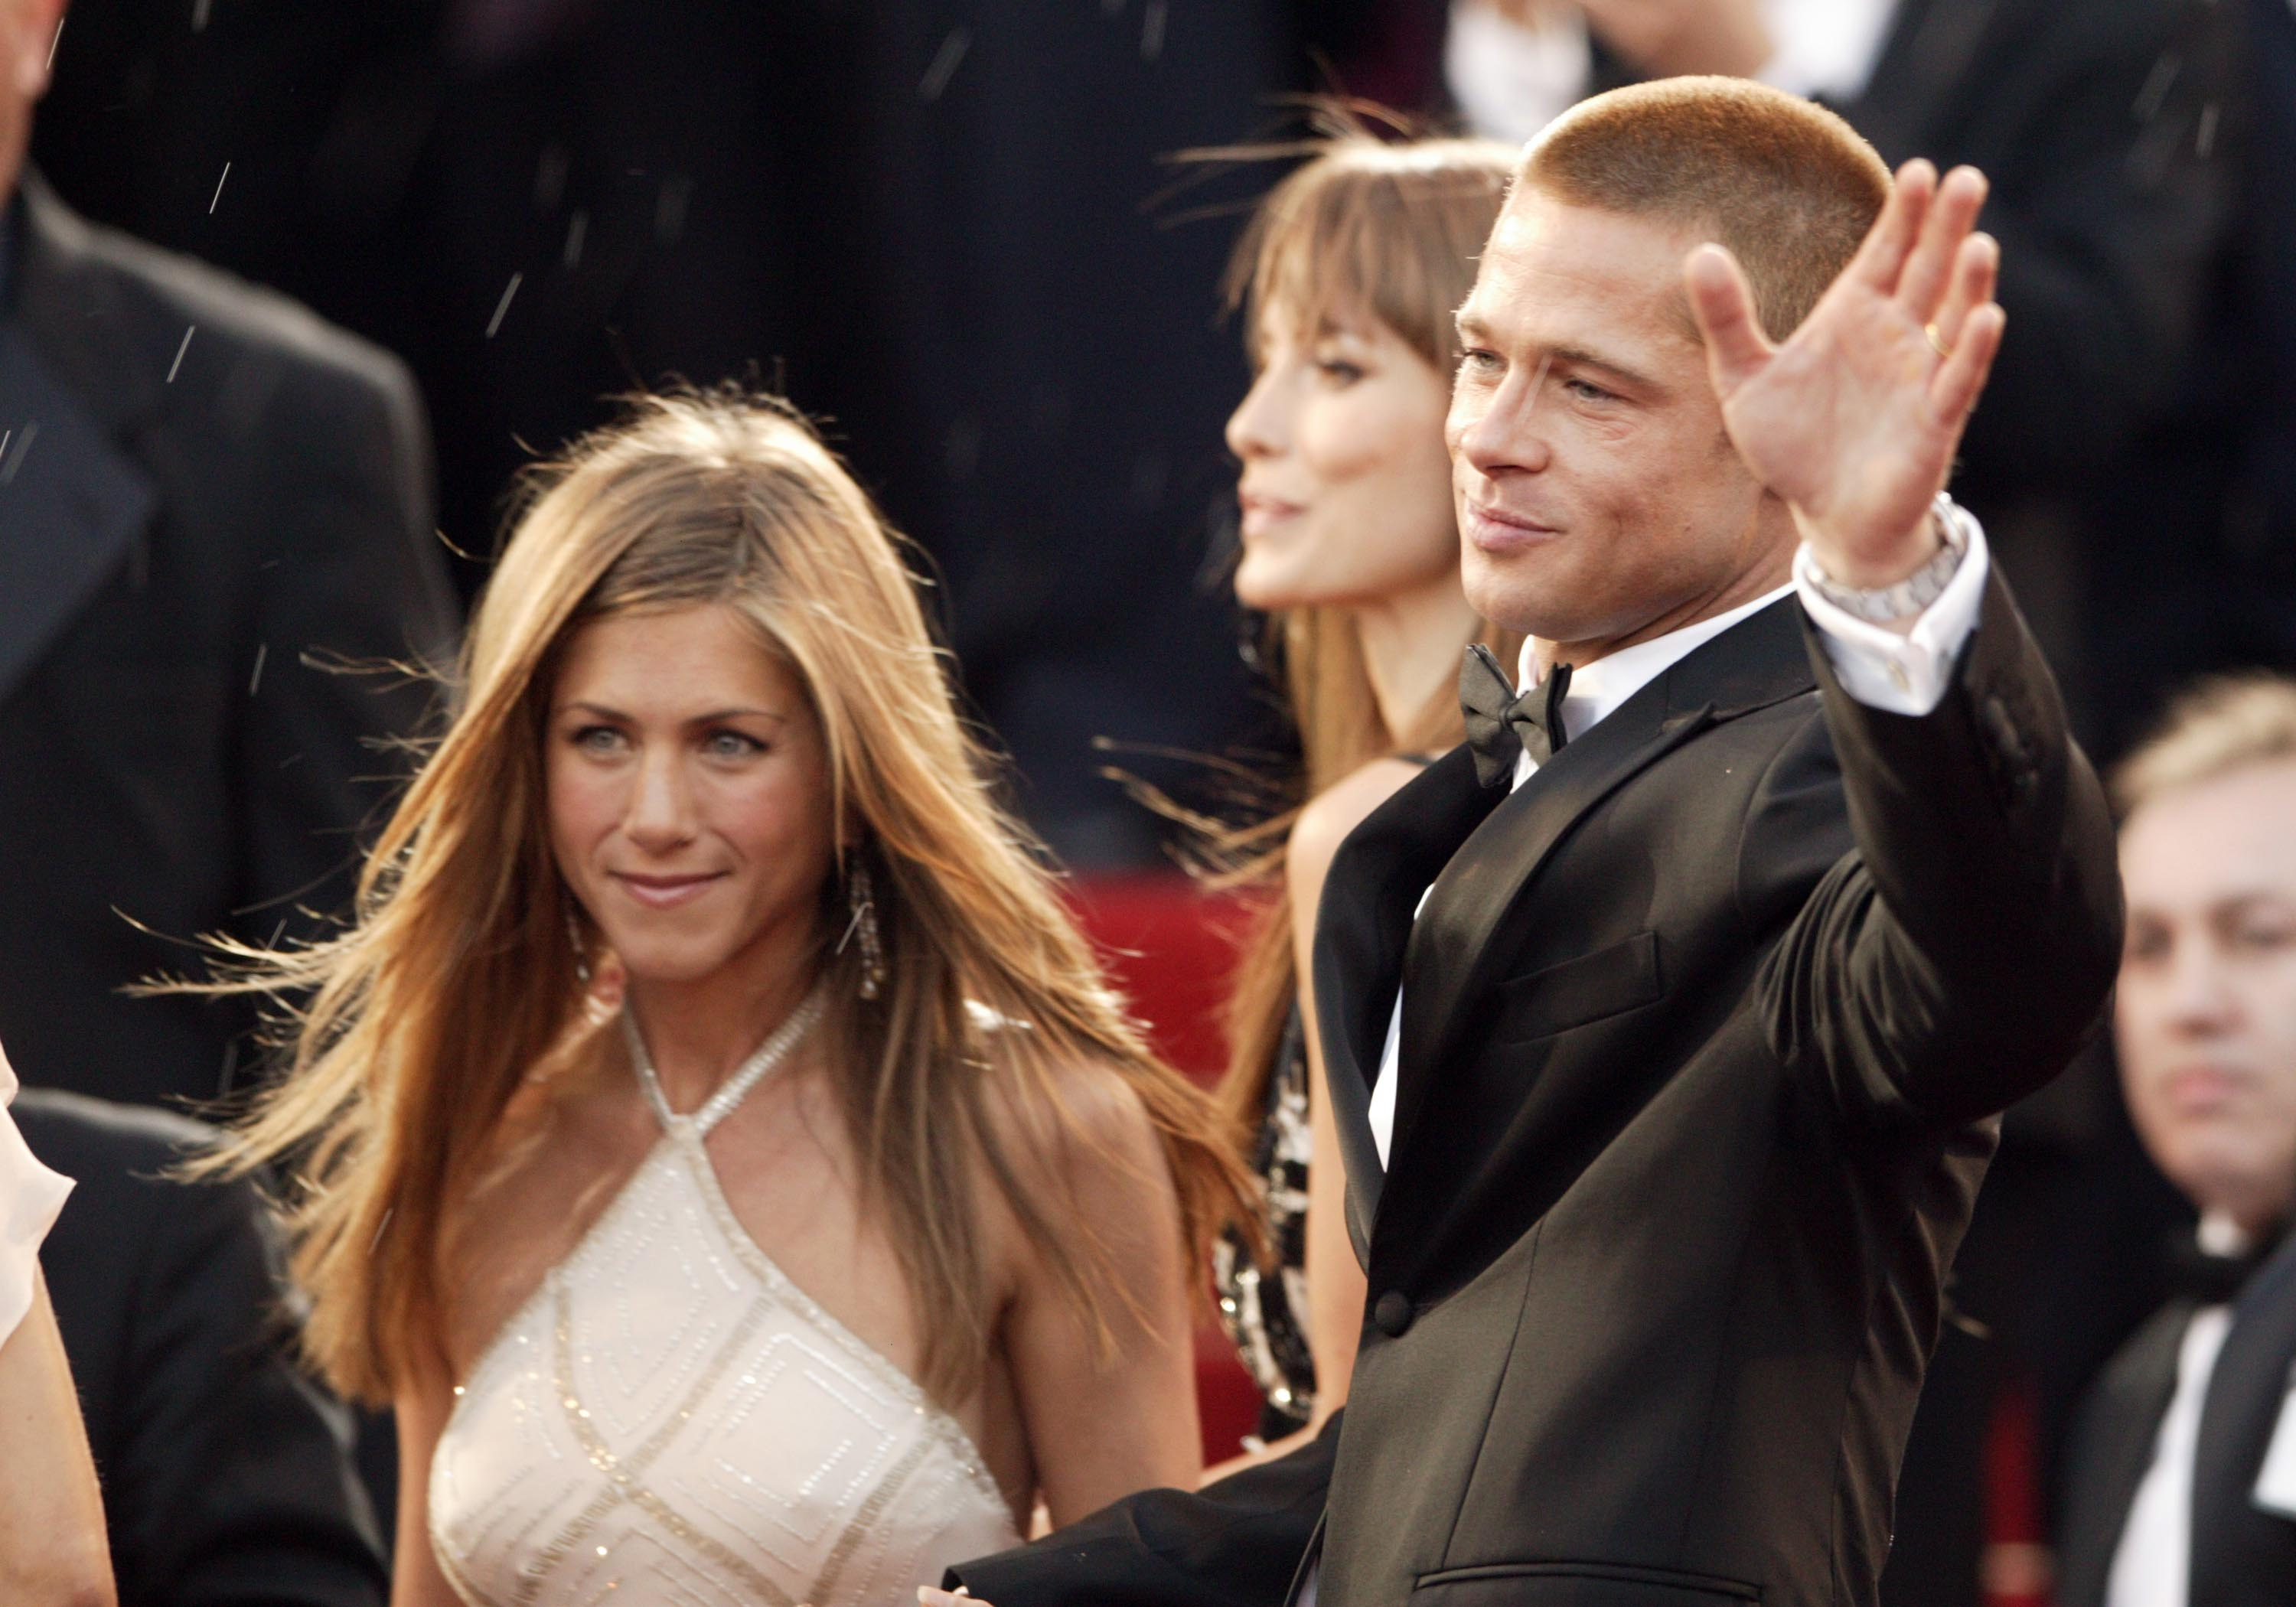 Image Credit: Getty Images/Dave Hogan | Pitt and Aniston at the Troy premier